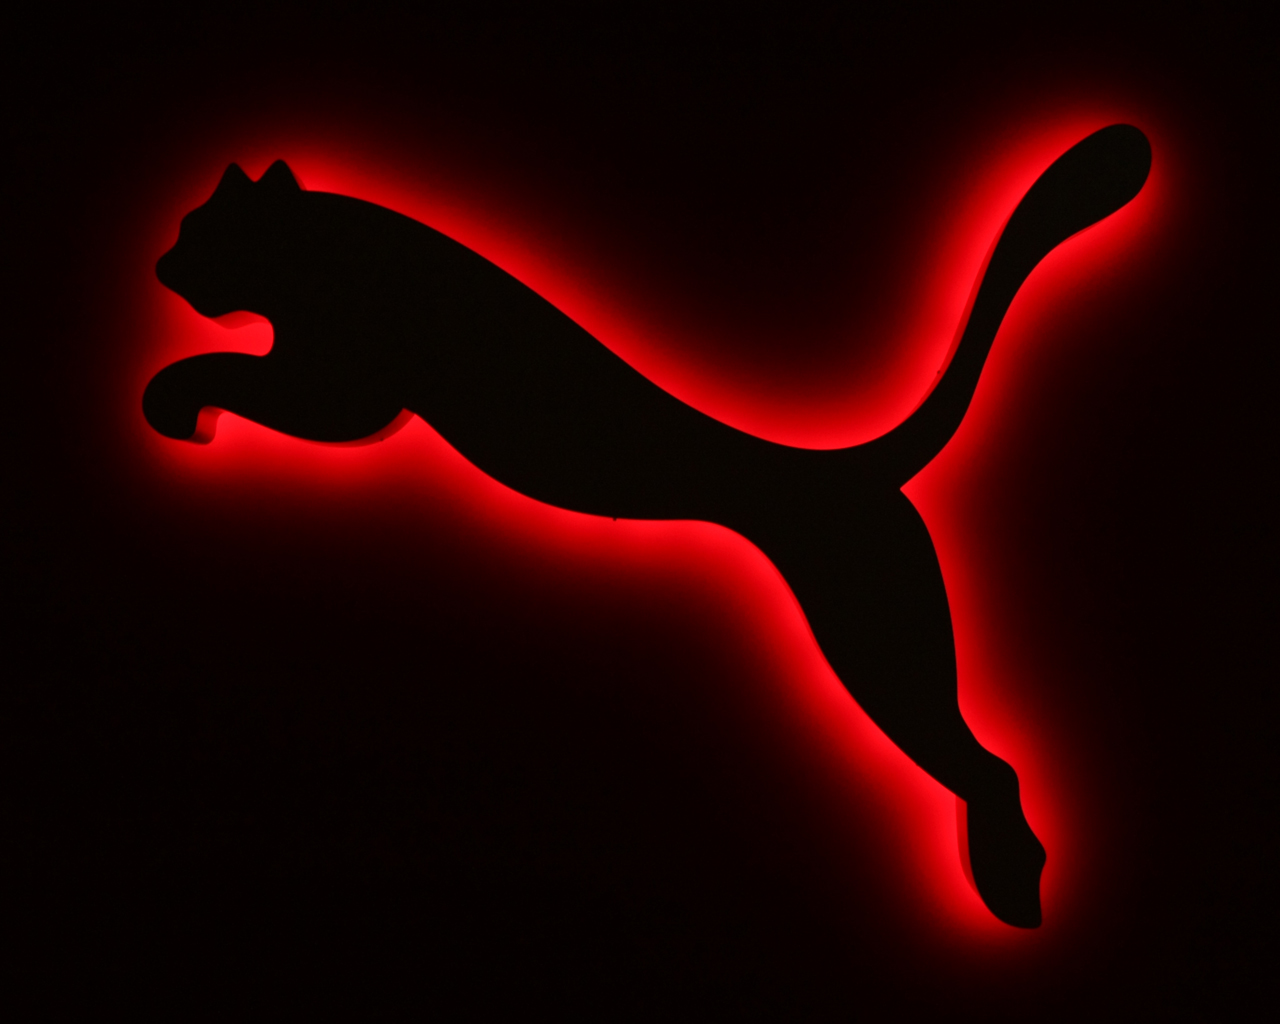 Wallpaper Hd Wallpapers Puma